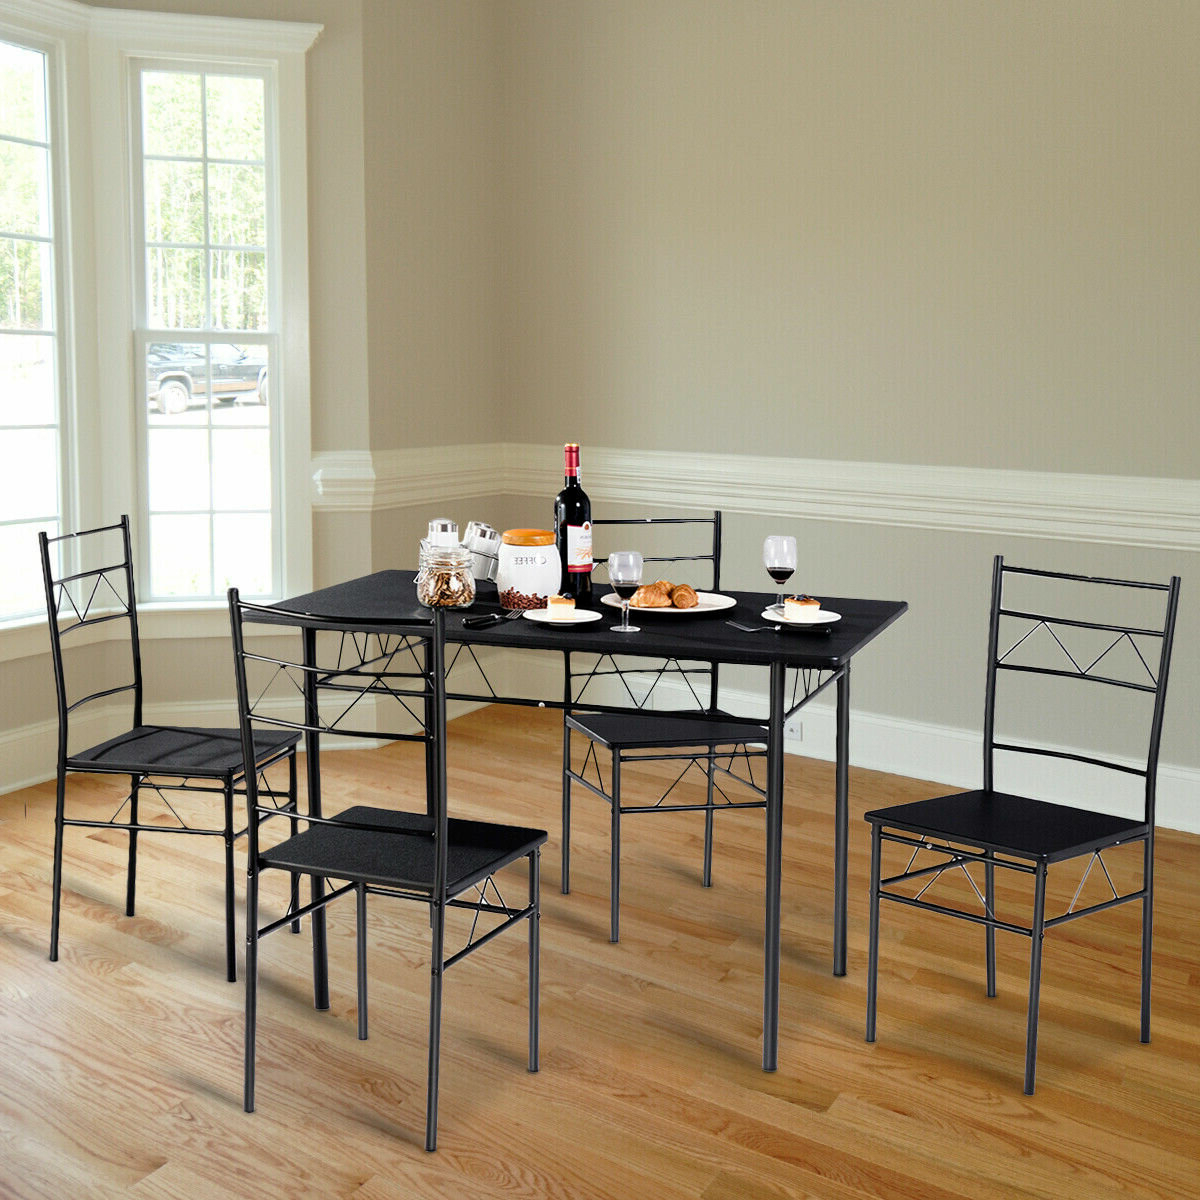 5 Piece Breakfast Nook Dining Sets With Regard To Fashionable August Grove Helfer 5 Piece Breakfast Nook Dining Set (View 22 of 25)